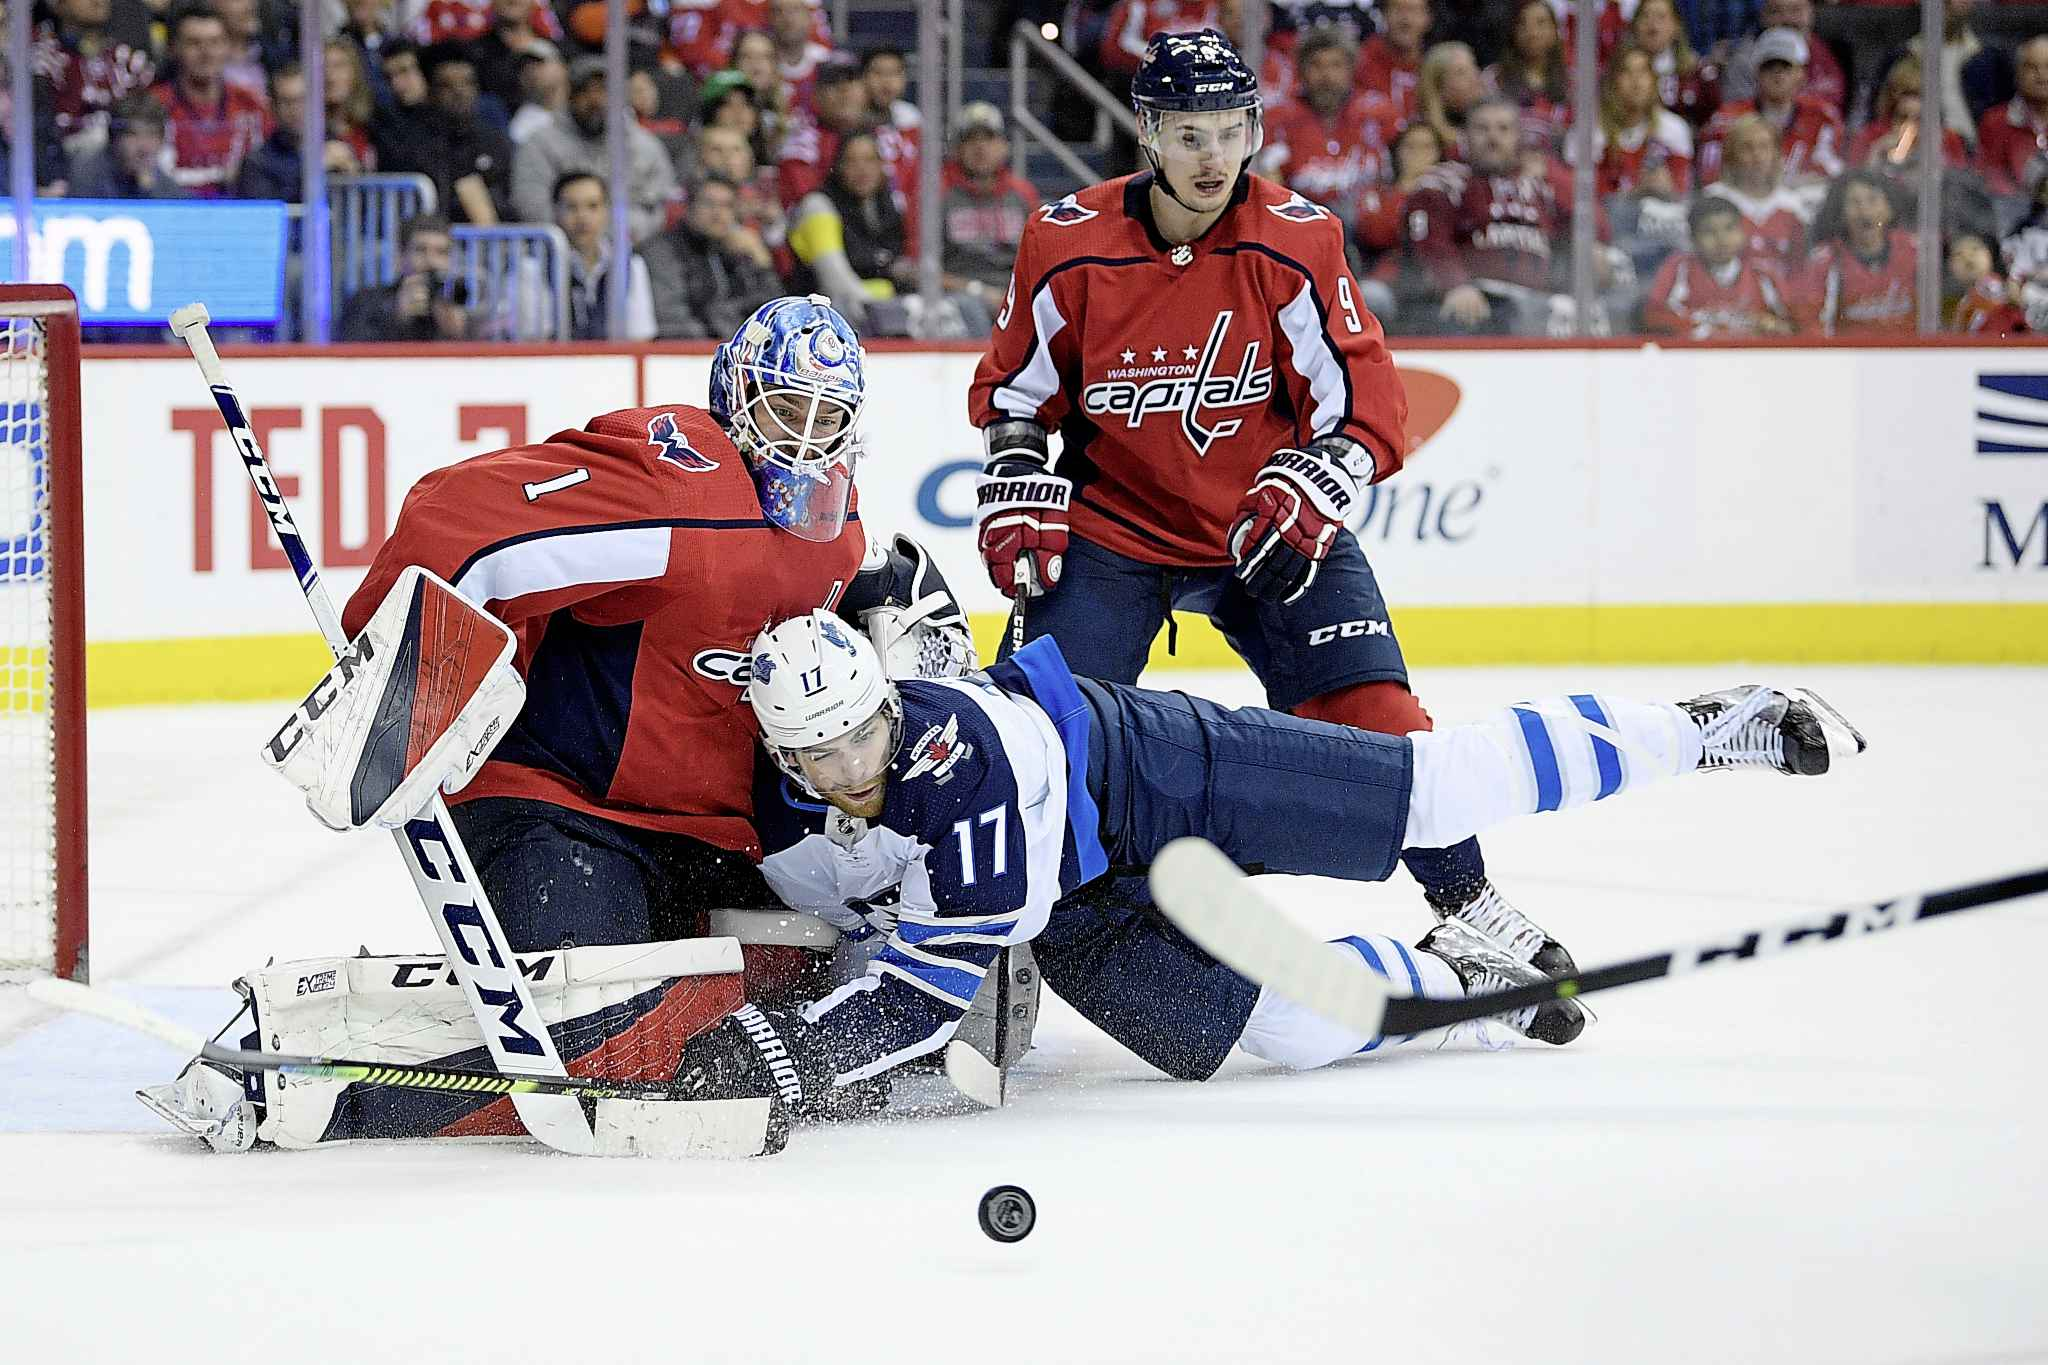 NICK WASS / THE ASSOCIATED PRESS</p><p>Winnipeg Jets center Adam Lowry (17) collides into Washington Capitals goaltender Pheonix Copley (1) during the second period of an NHL hockey game, Sunday, March 10, 2019, in Washington. Also seen is Capitals defenseman Dmitry Orlov (9), of Russia.</p>